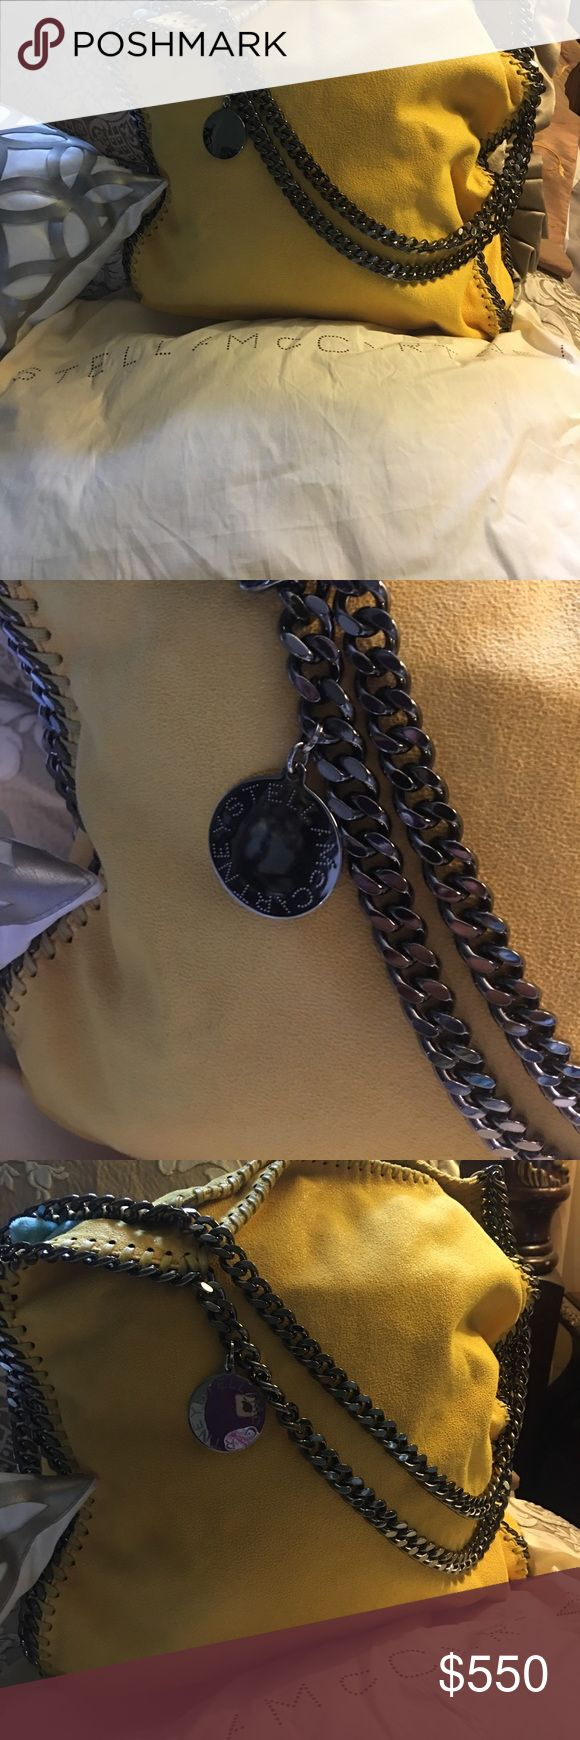 Stella Maccartney Purse Great condition! It doesn't have any damage! It comes with original dust bag Stella McCartney Bags Totes